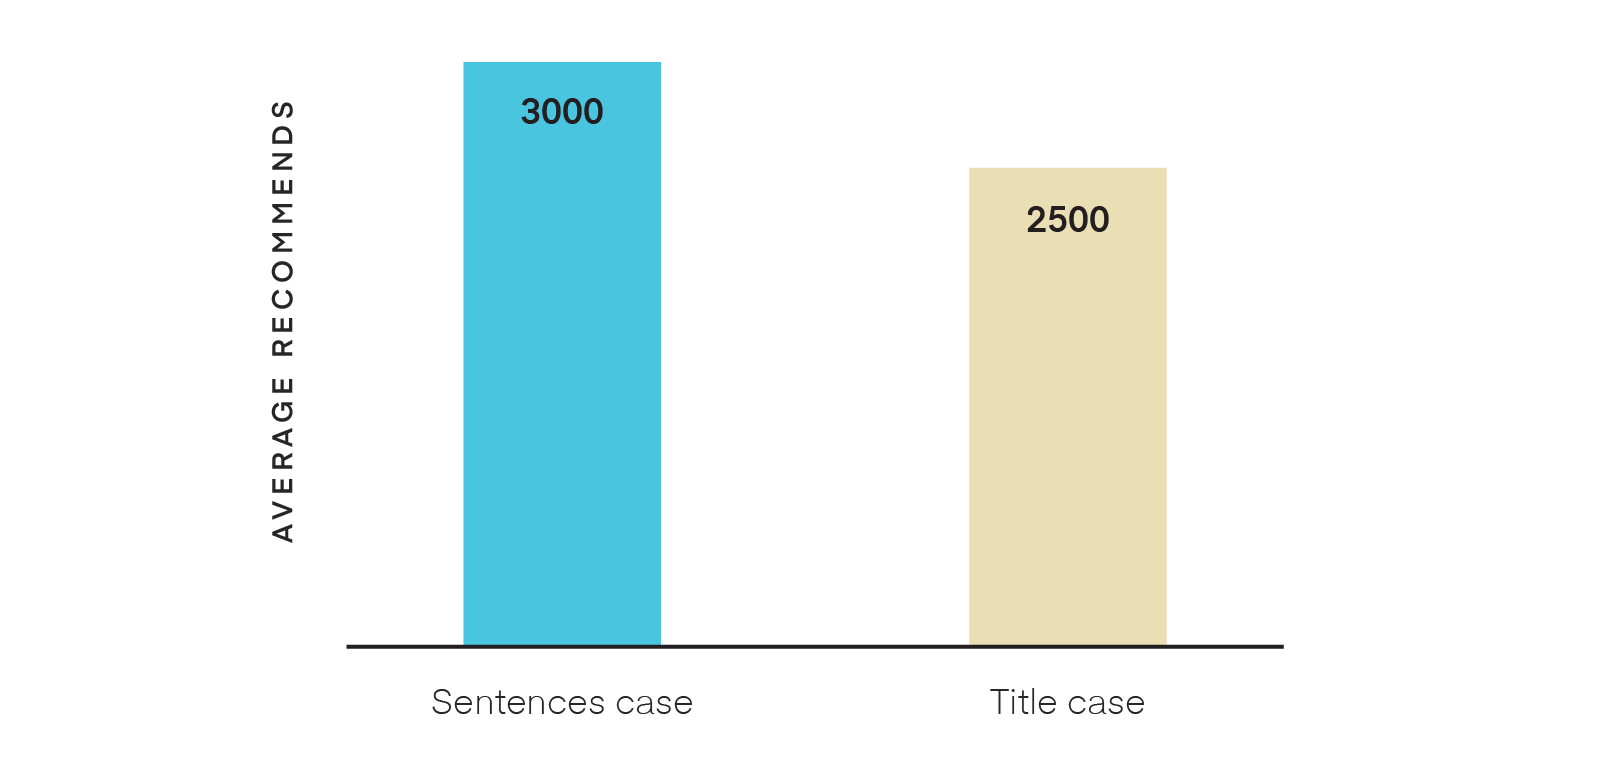 Use of title casebar chart